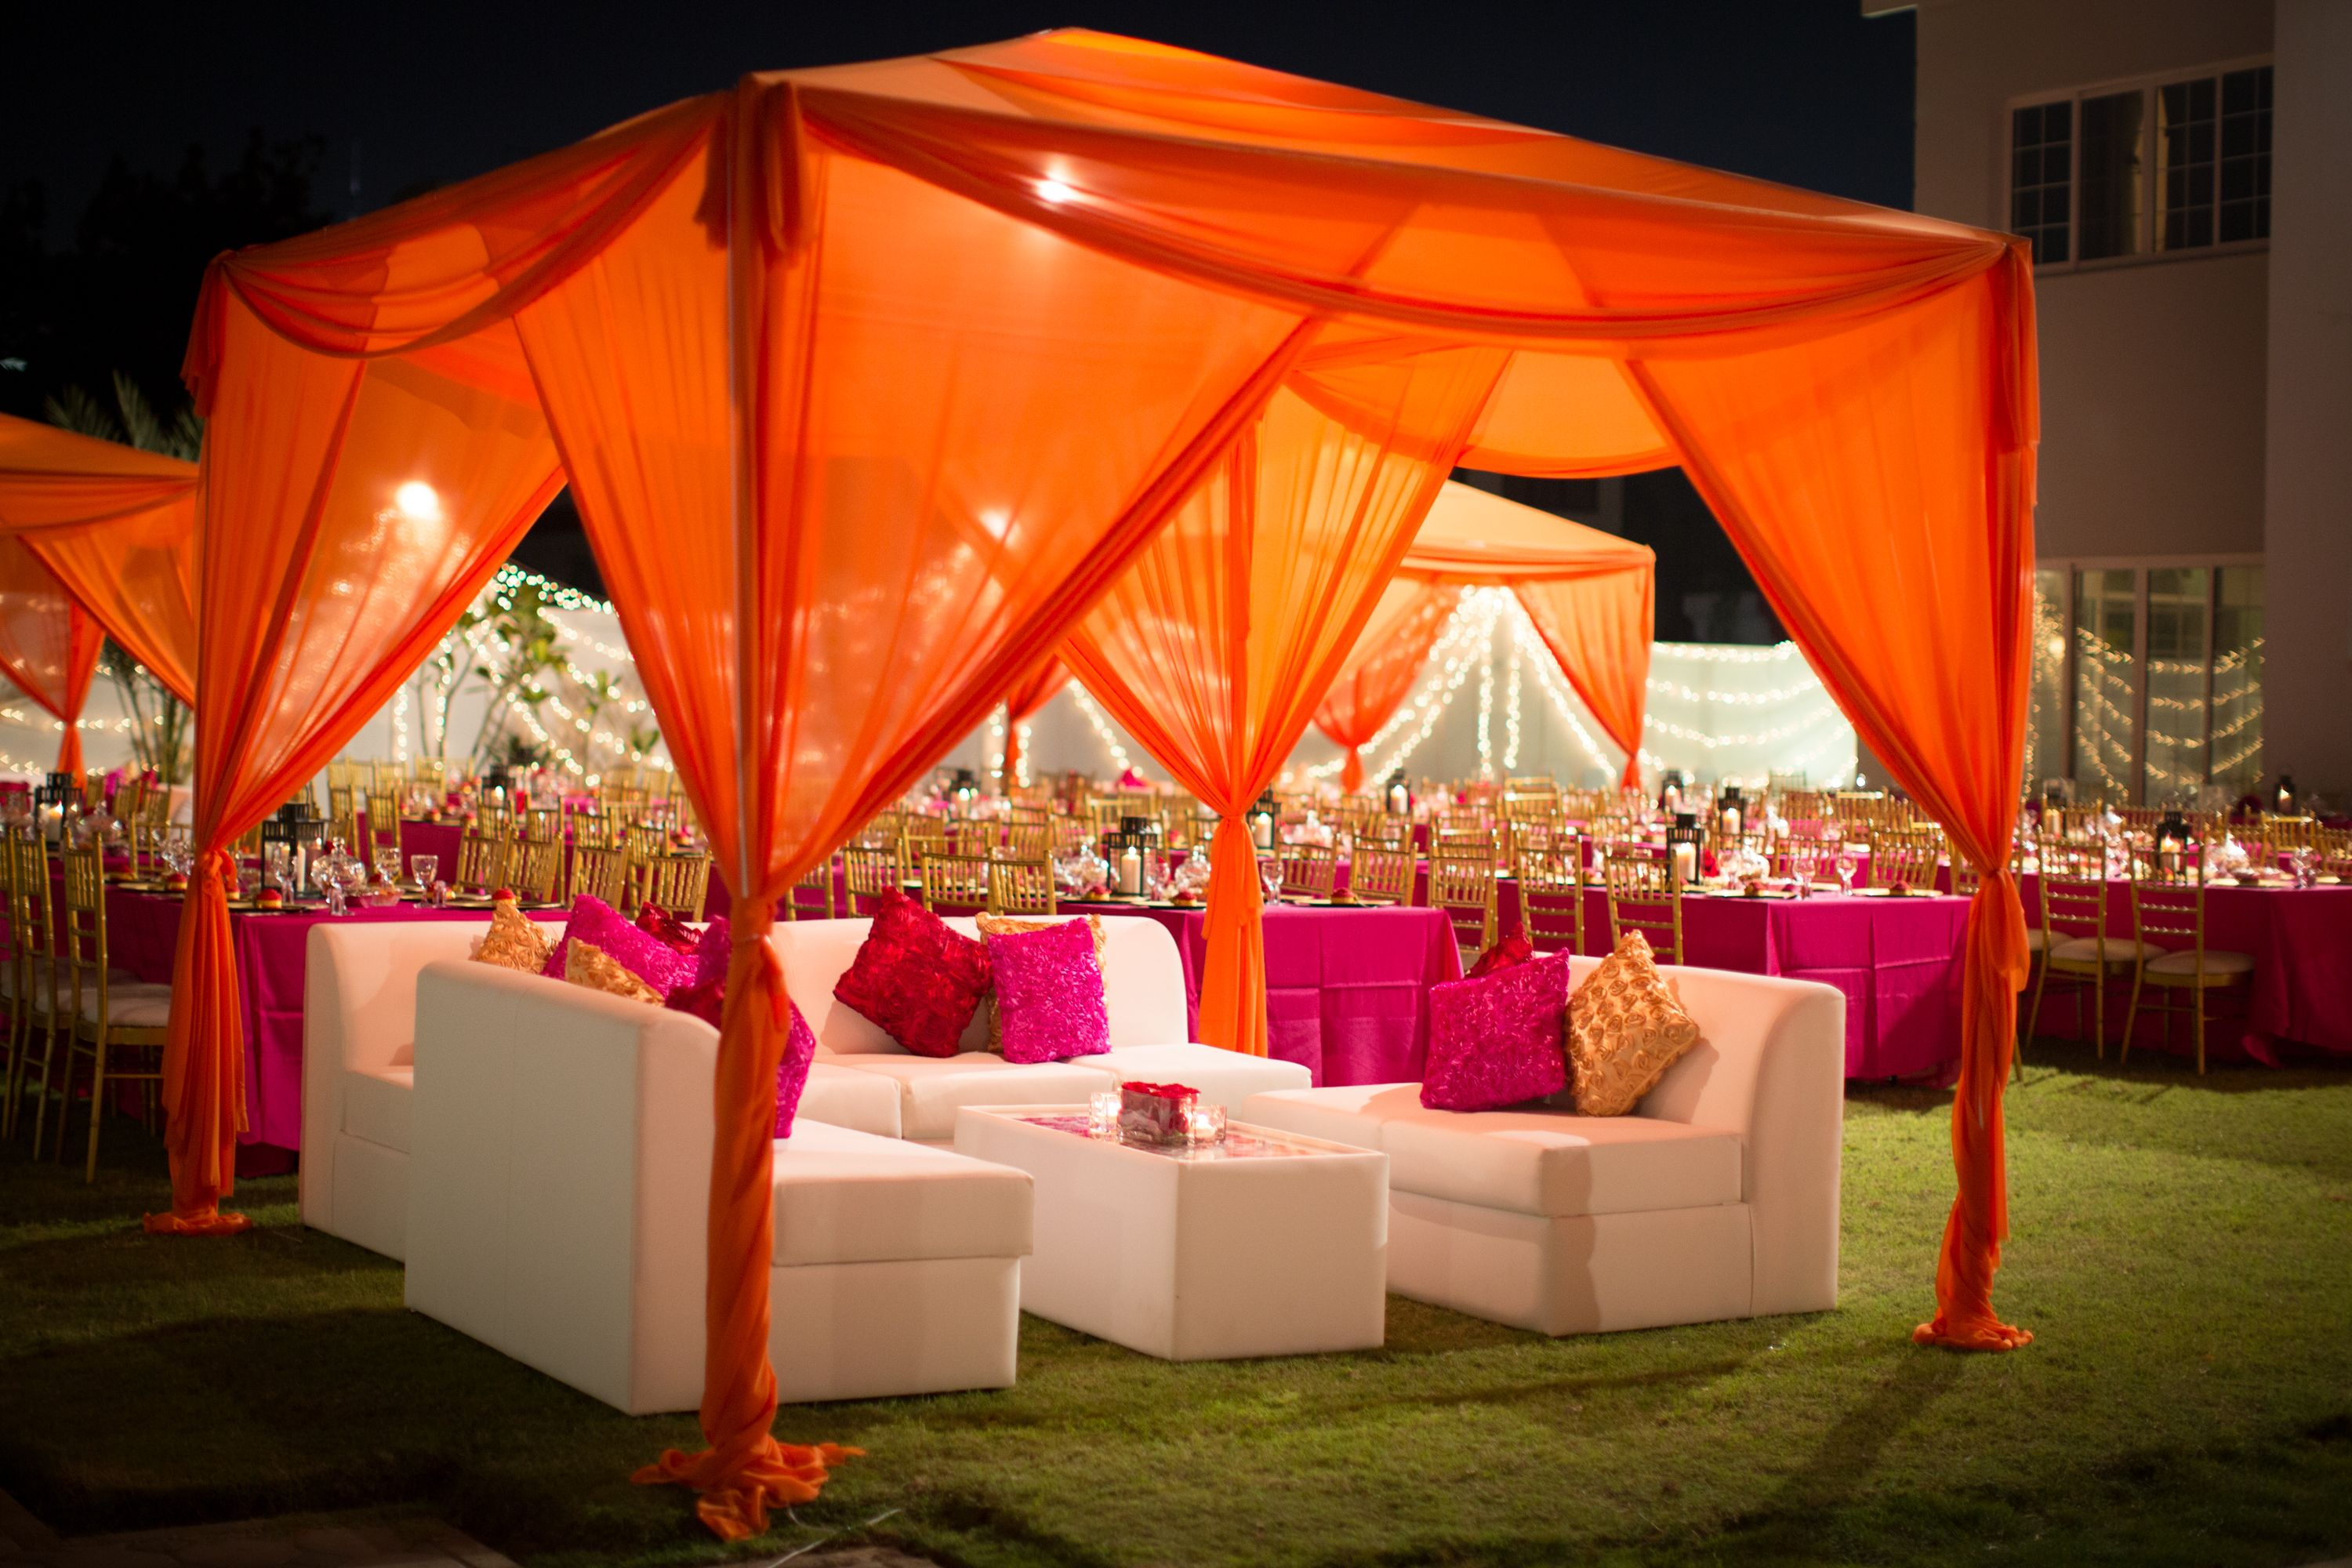 Arabian wedding lounge tent seating wedding and events for Decoration images